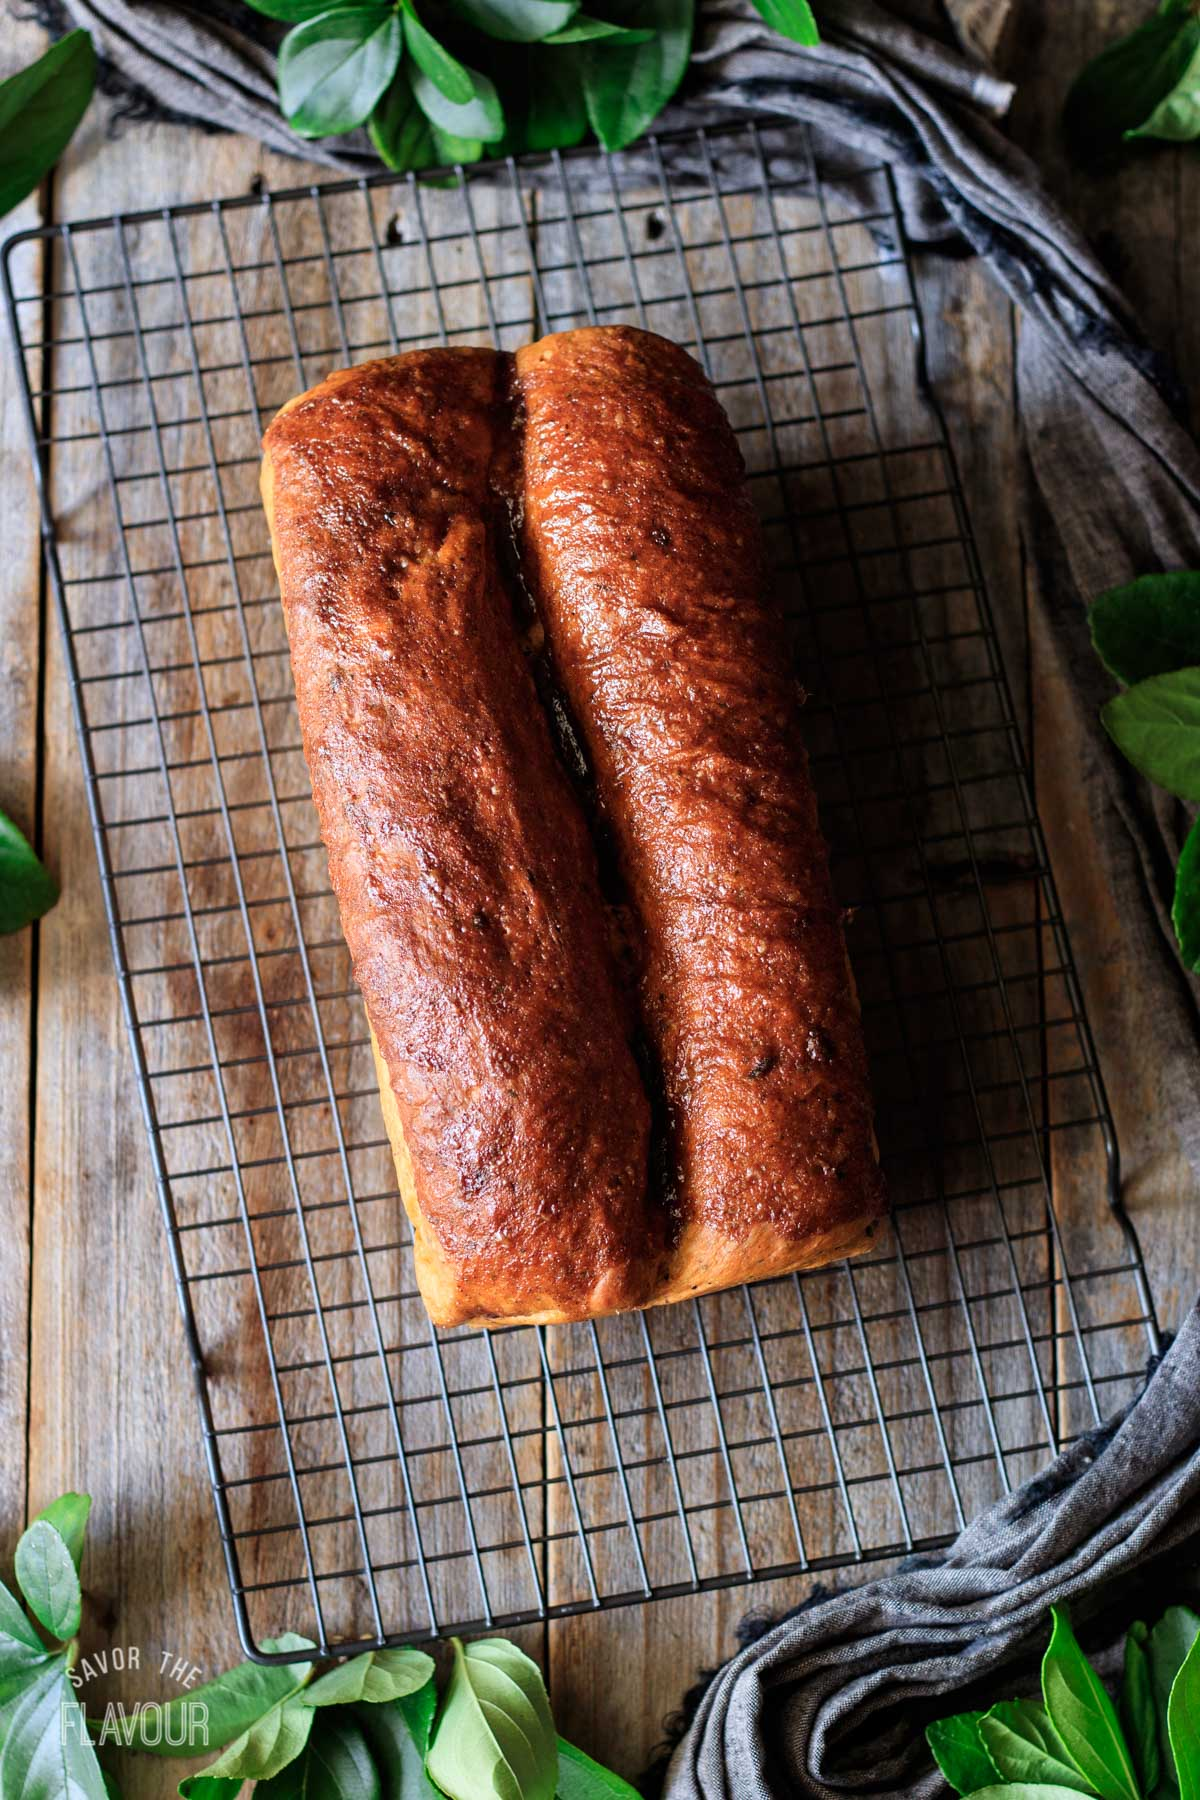 baked tomato basil bread with a sweet glaze brushed on top